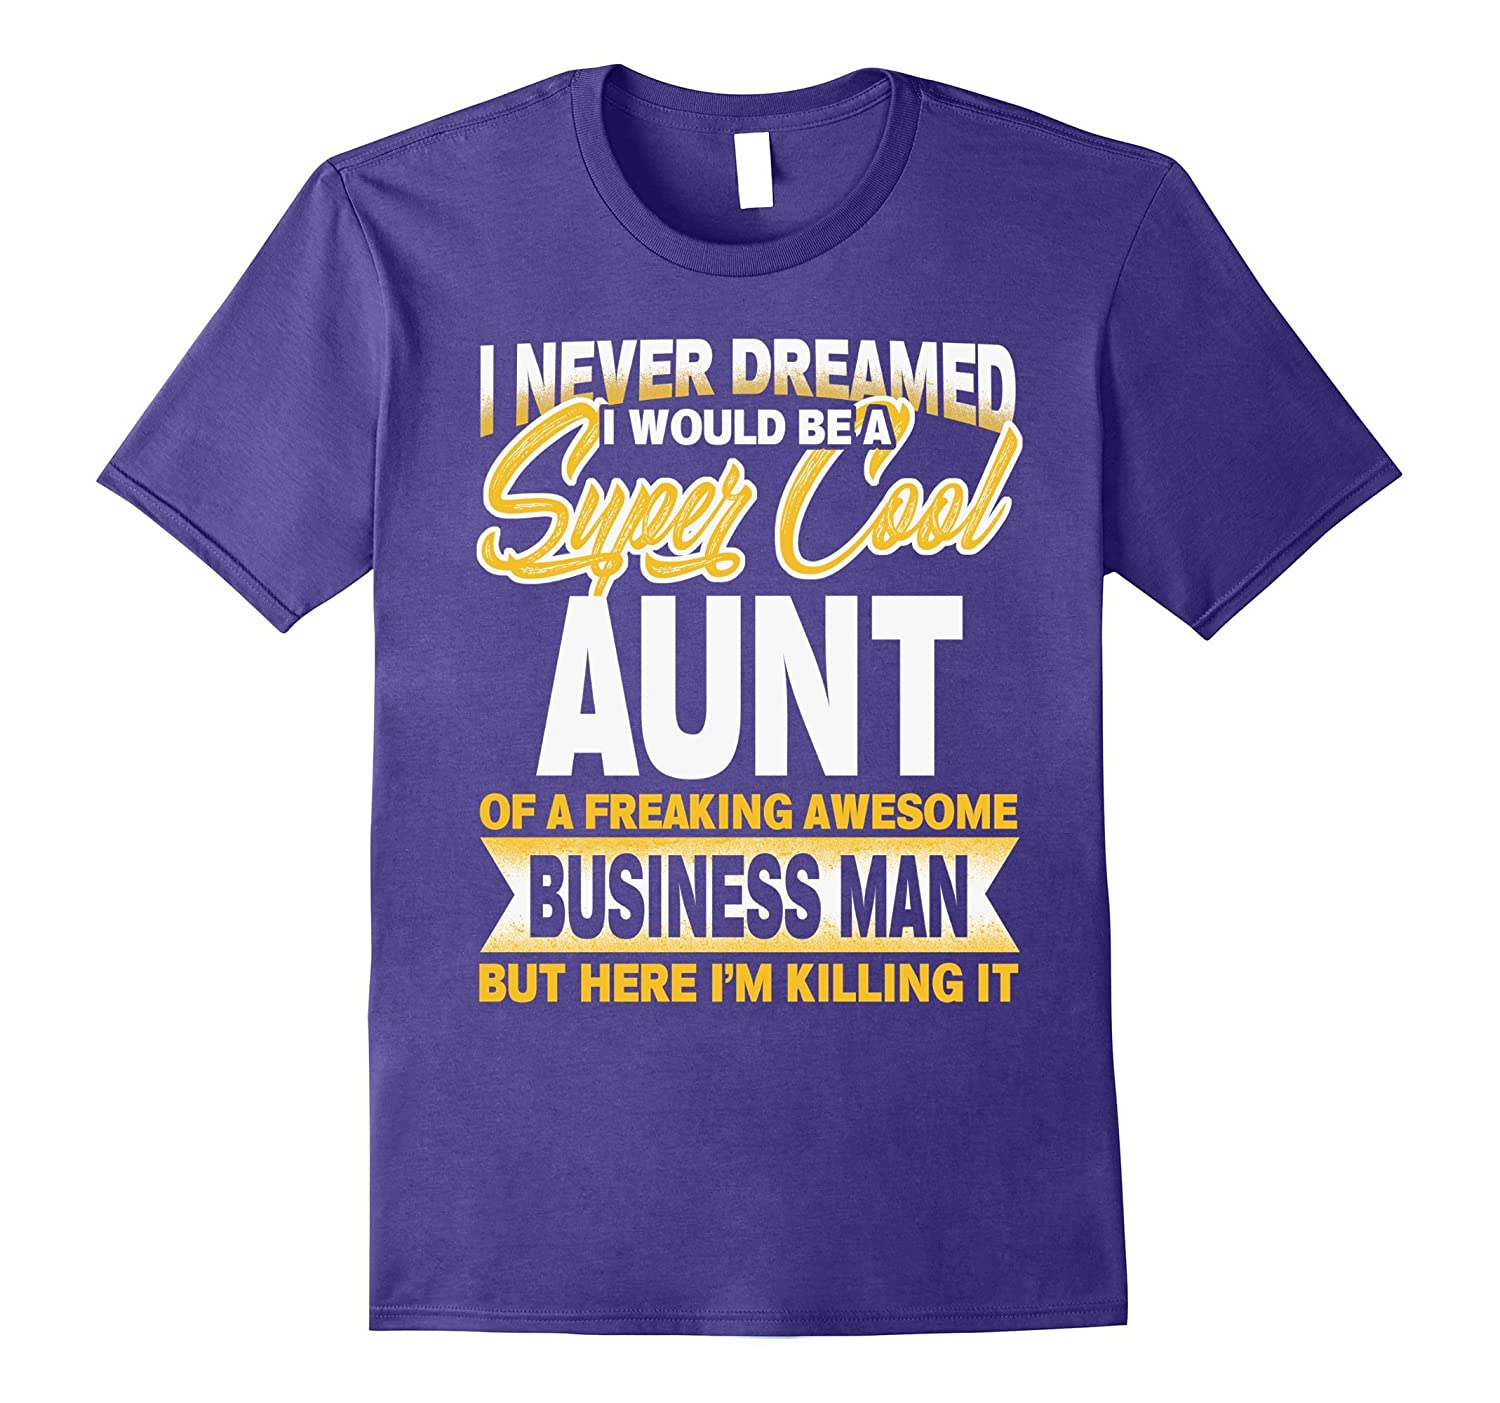 im a super cool aunt of an awesome BUSINESS MAN-TJ